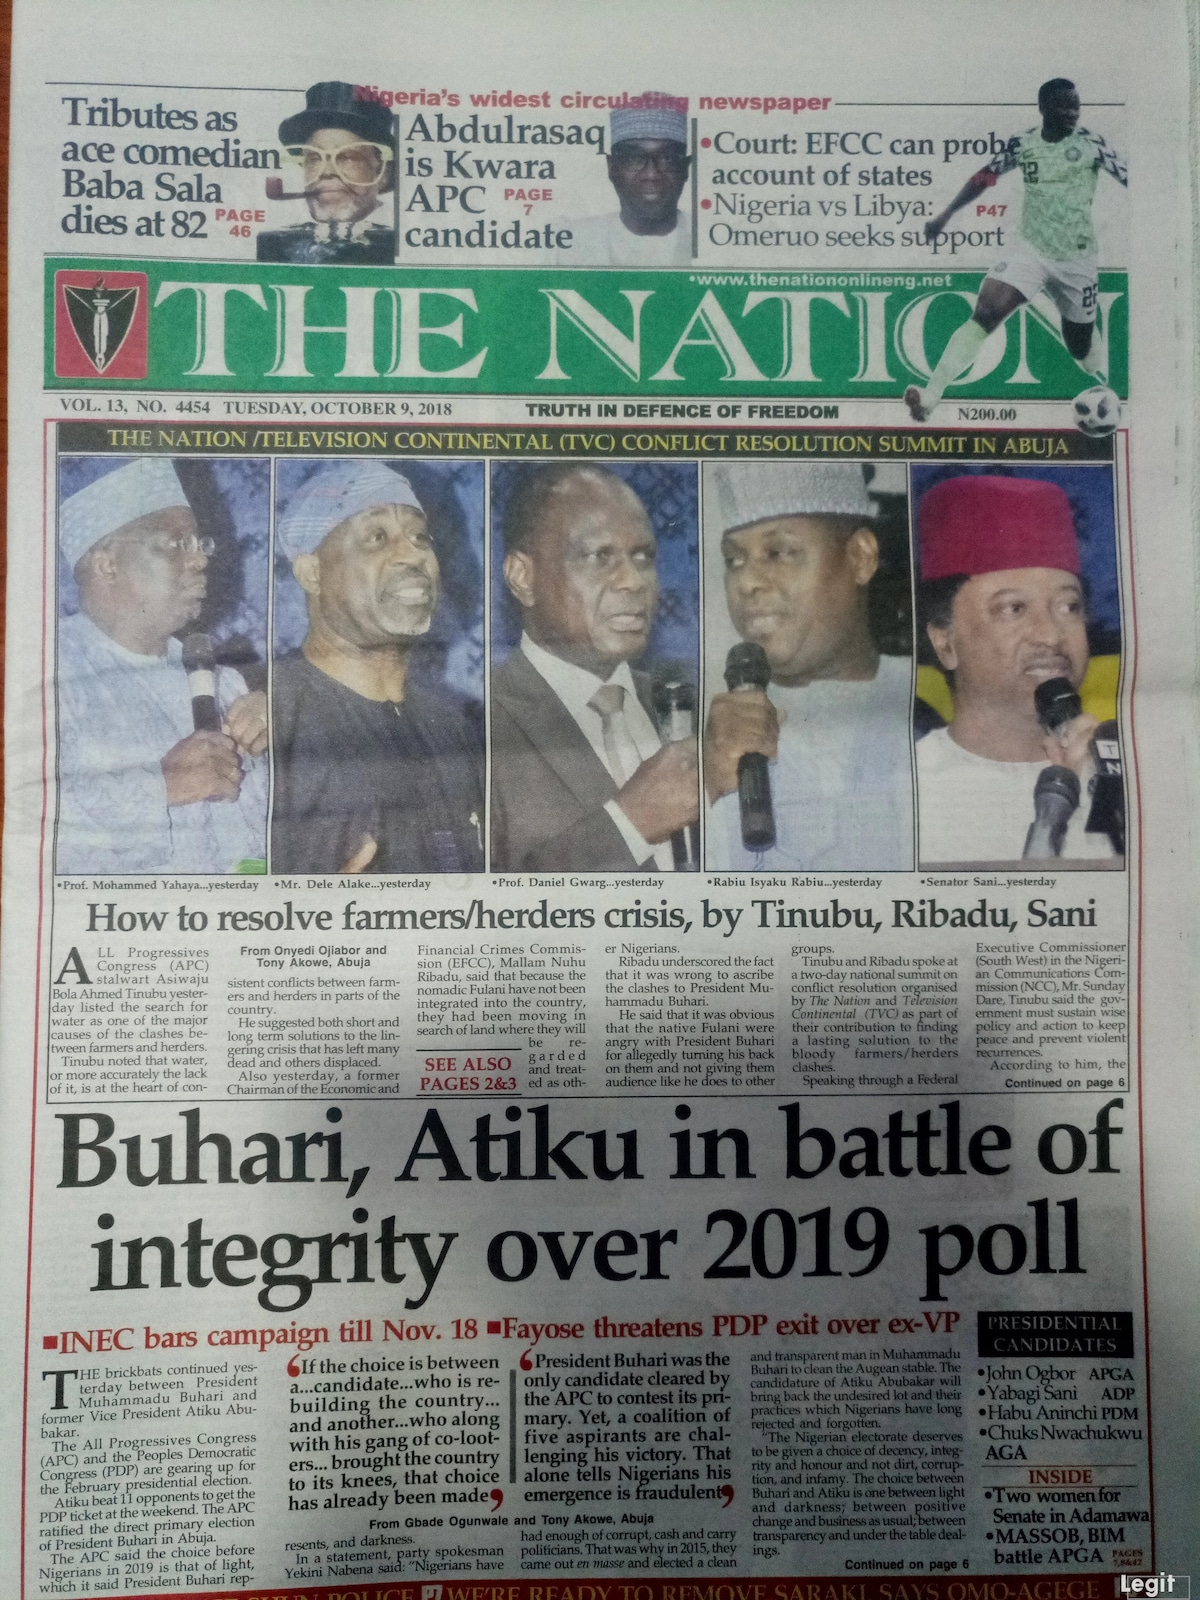 Newspaper review: Tinubu, Ribadu, Sani reveal how to resolve farmers/herders crisis